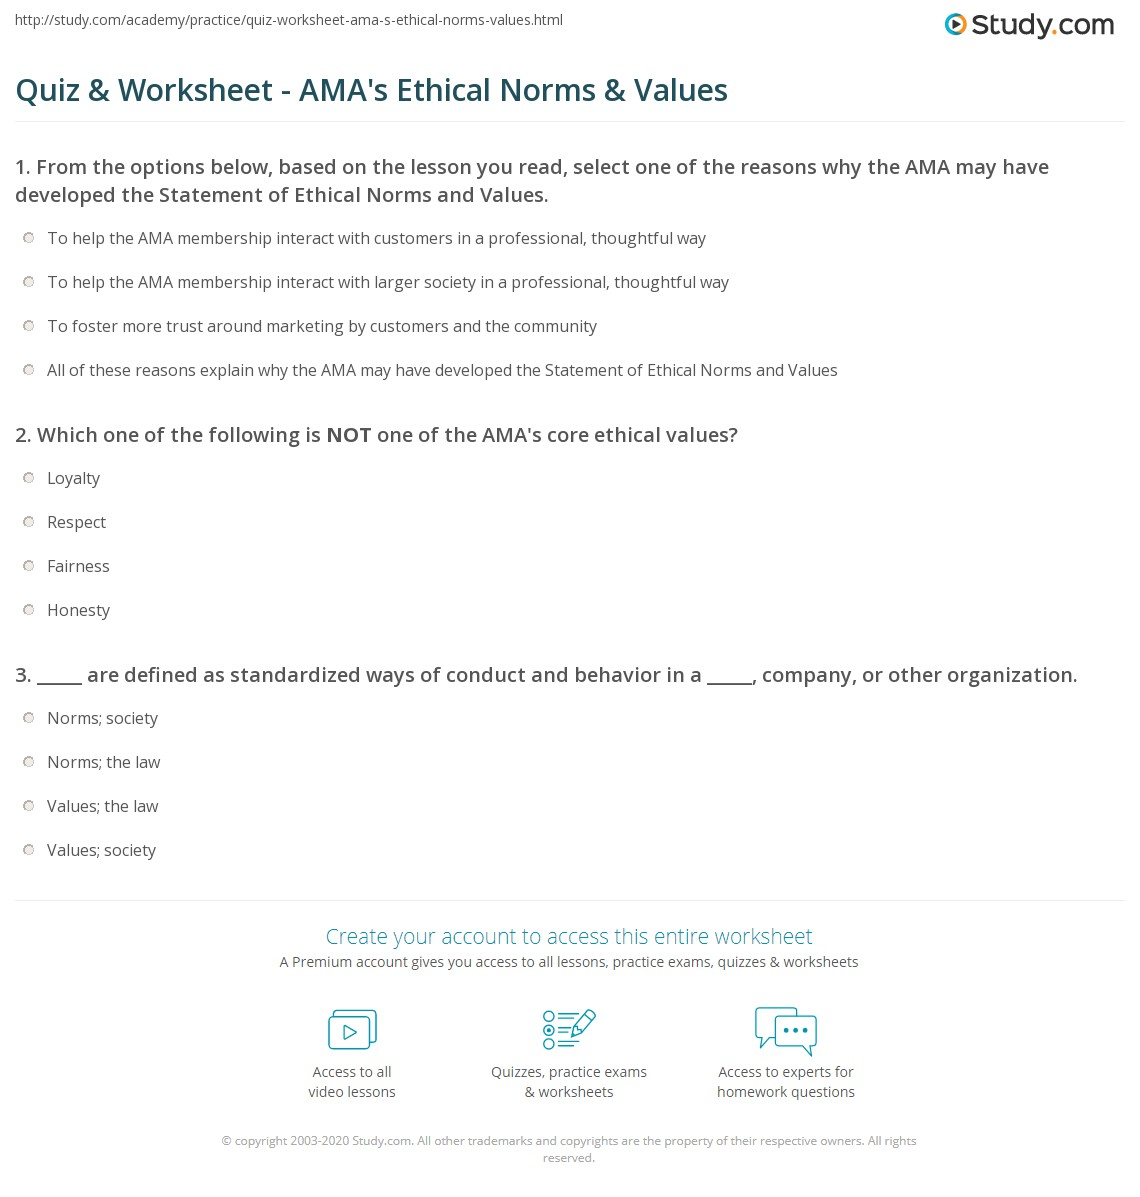 Quiz & Worksheet - AMA\'s Ethical Norms & Values | Study.com